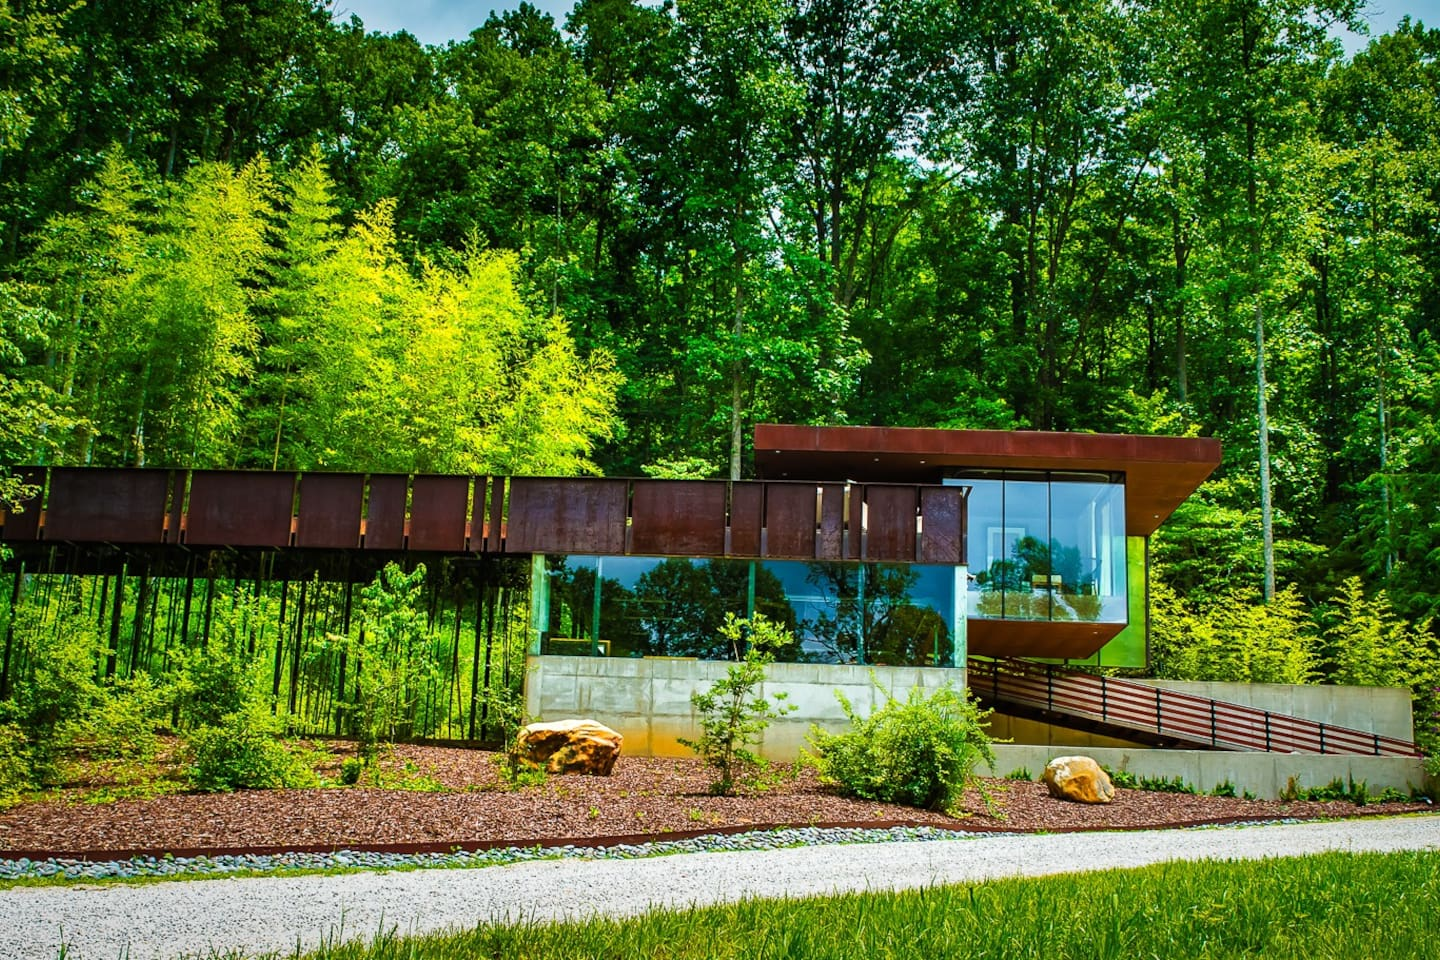 American Institute of Architects award winning tree house on private 22 acre modern mountain estate - Glass Cabin above & Bamboo House below (available late Fall 2019).